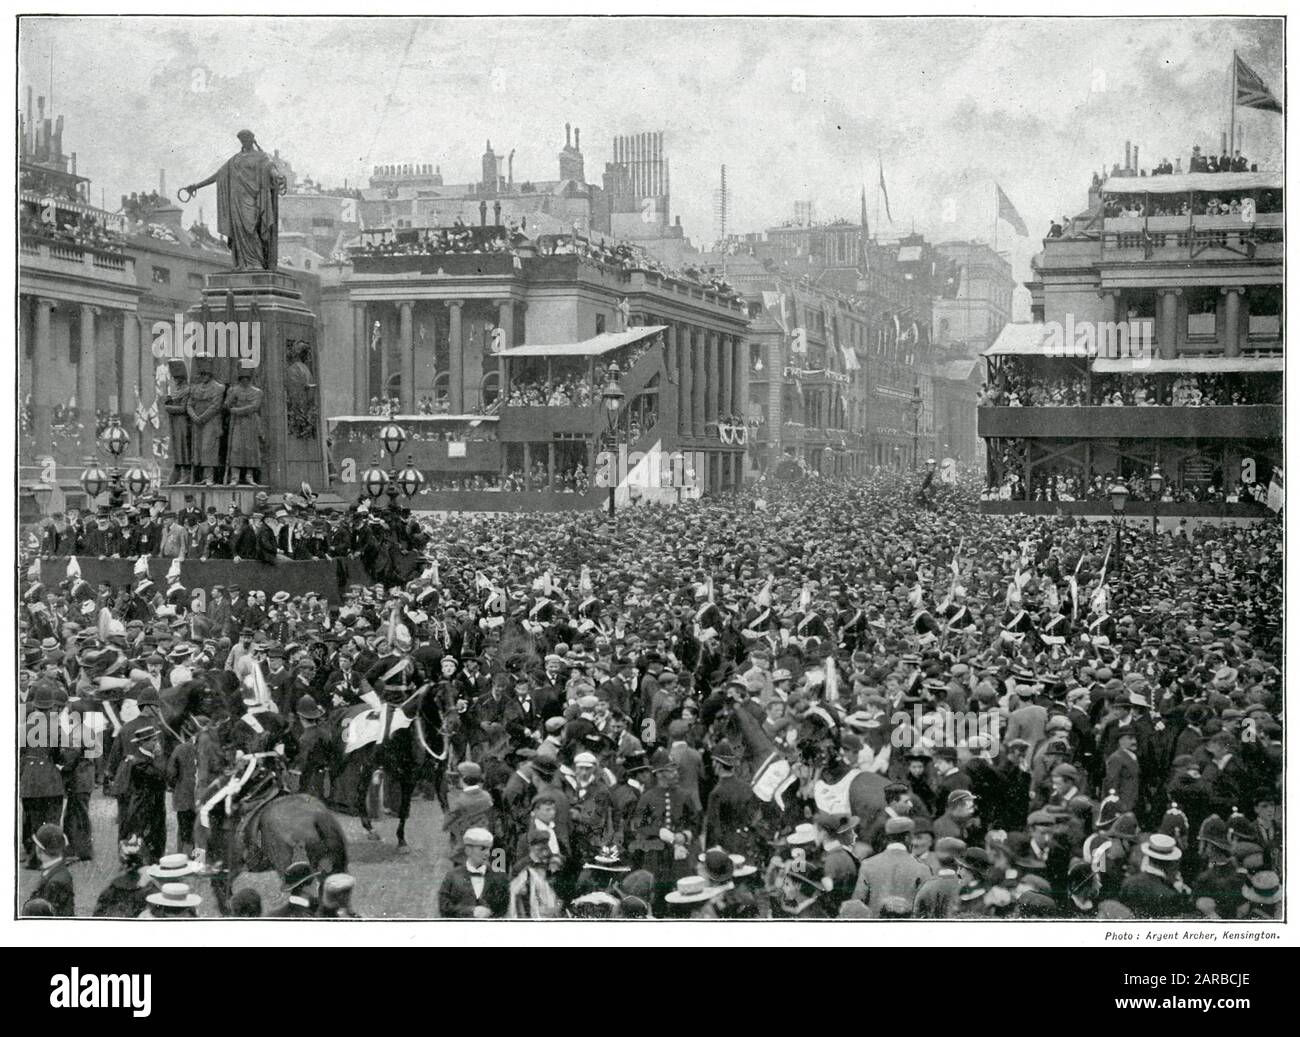 London crowds outside Waterloo Place, celebrating years later the victory, raised to commemorate the heroism of the Brigade of Guards in the Crimean War. Around the foot of the statue a group of veteran soldiers wearing their medals standing, glad to be there to testify their loyalty to Queen Victoria.     Date: 1899 Stock Photo